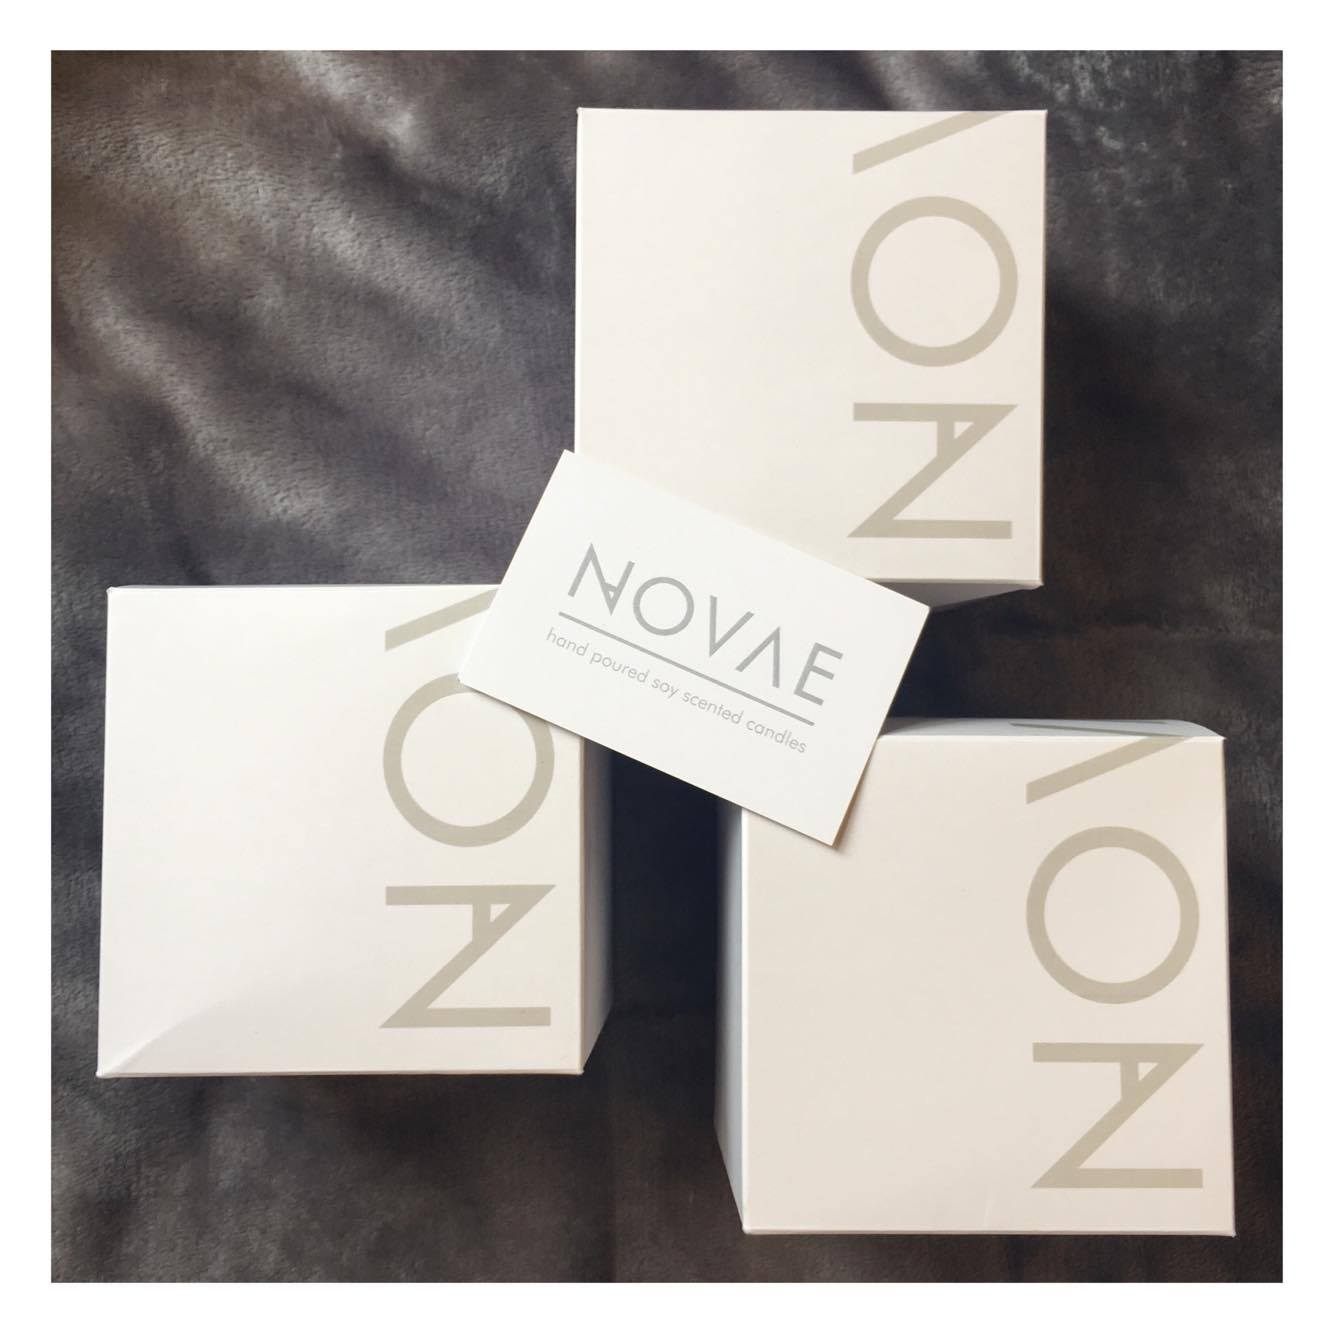 novae candles review